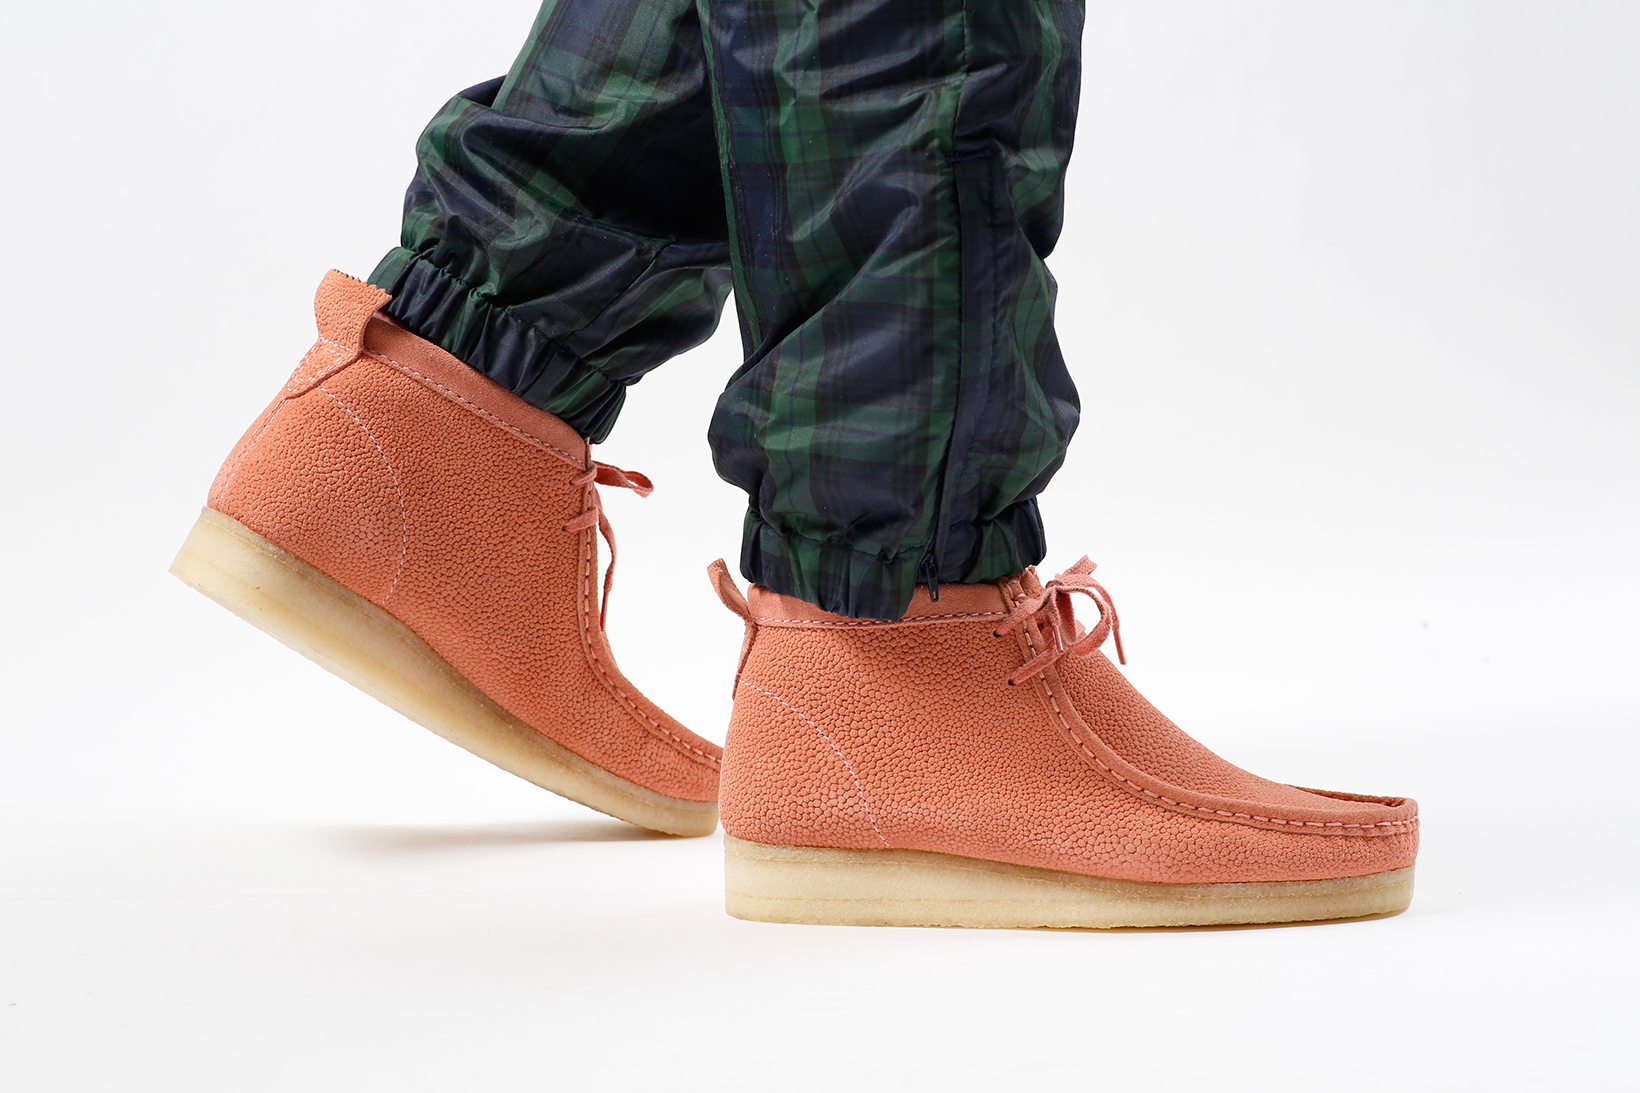 Concepts Gives the Clarks Wallabee and Trigenic Flex a Stingray Suede Makeover